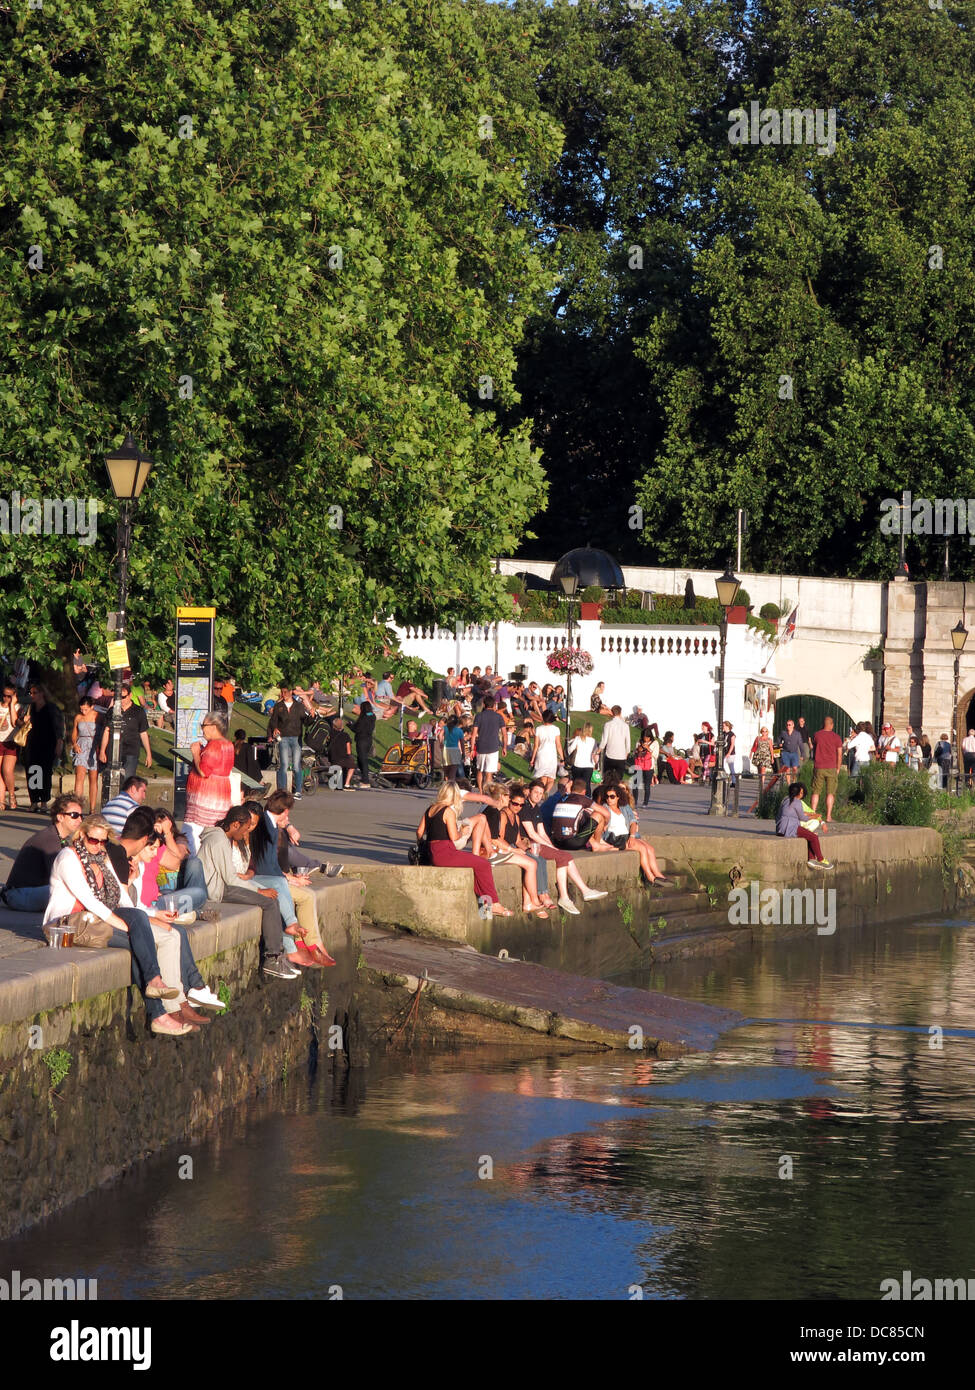 People relaxing on the Thames riverbank on a summer evening in Richmond. - Stock Image